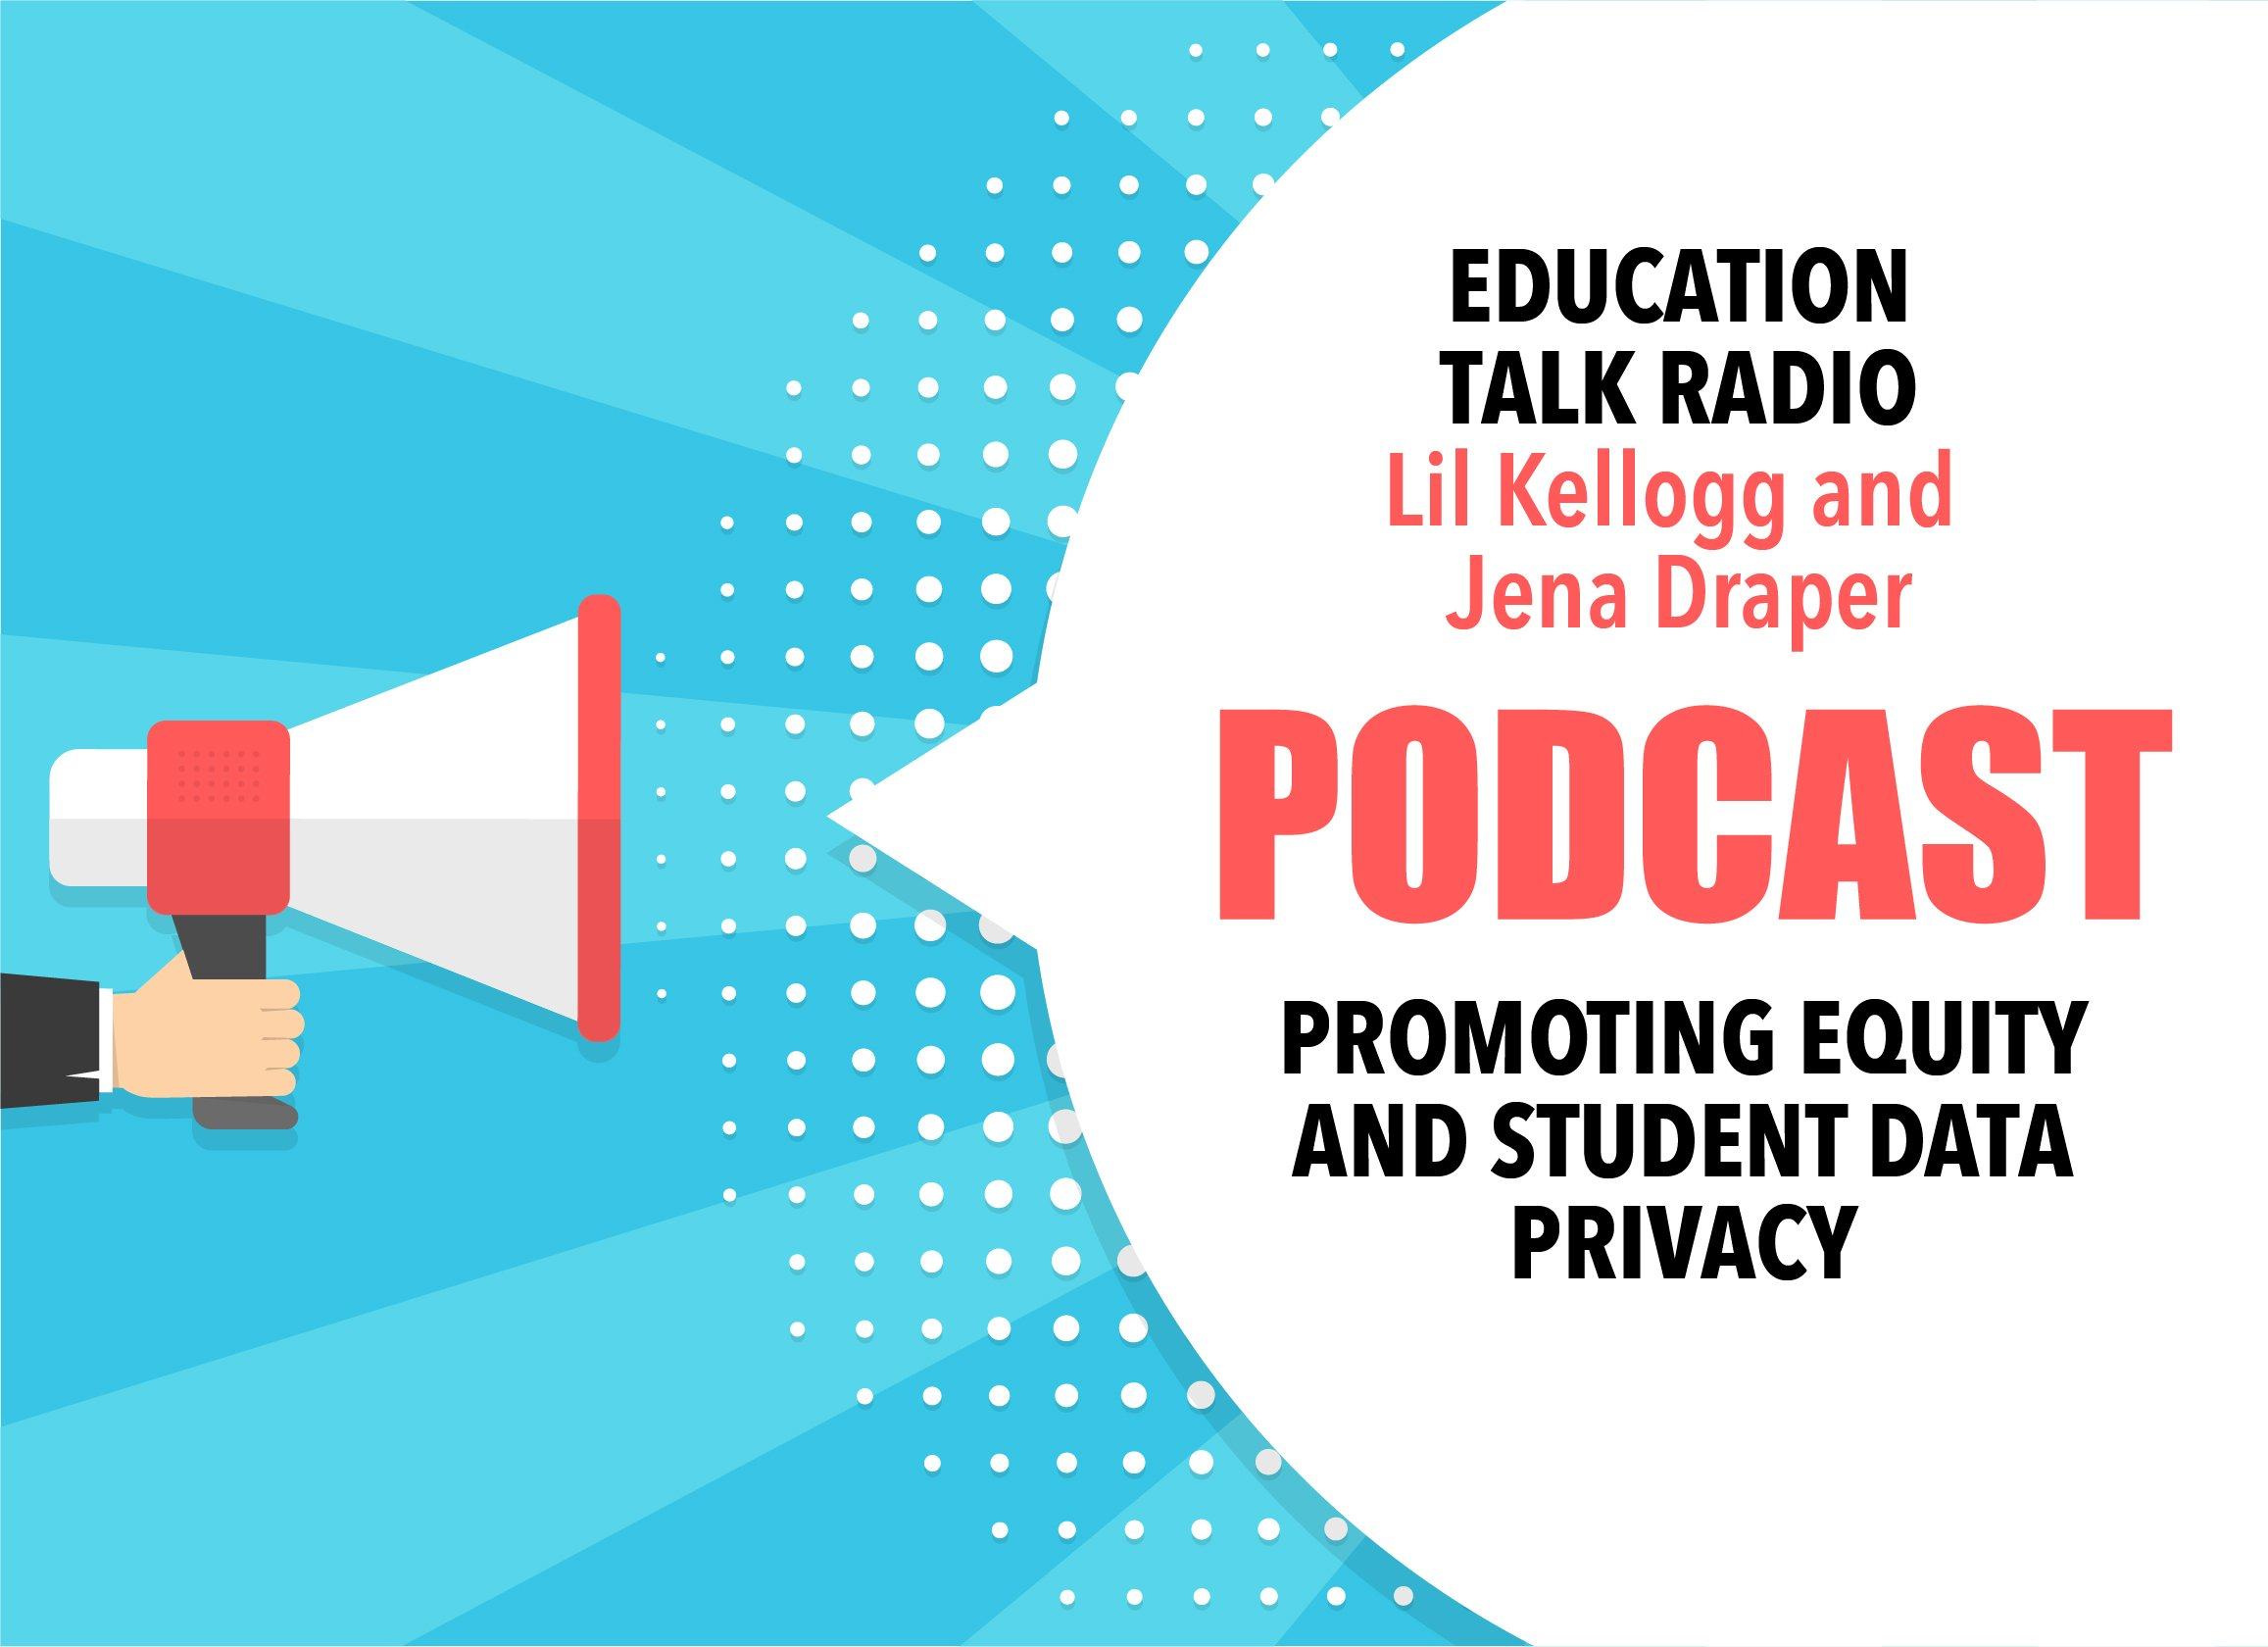 Promoting Equity and Student Data Privacy